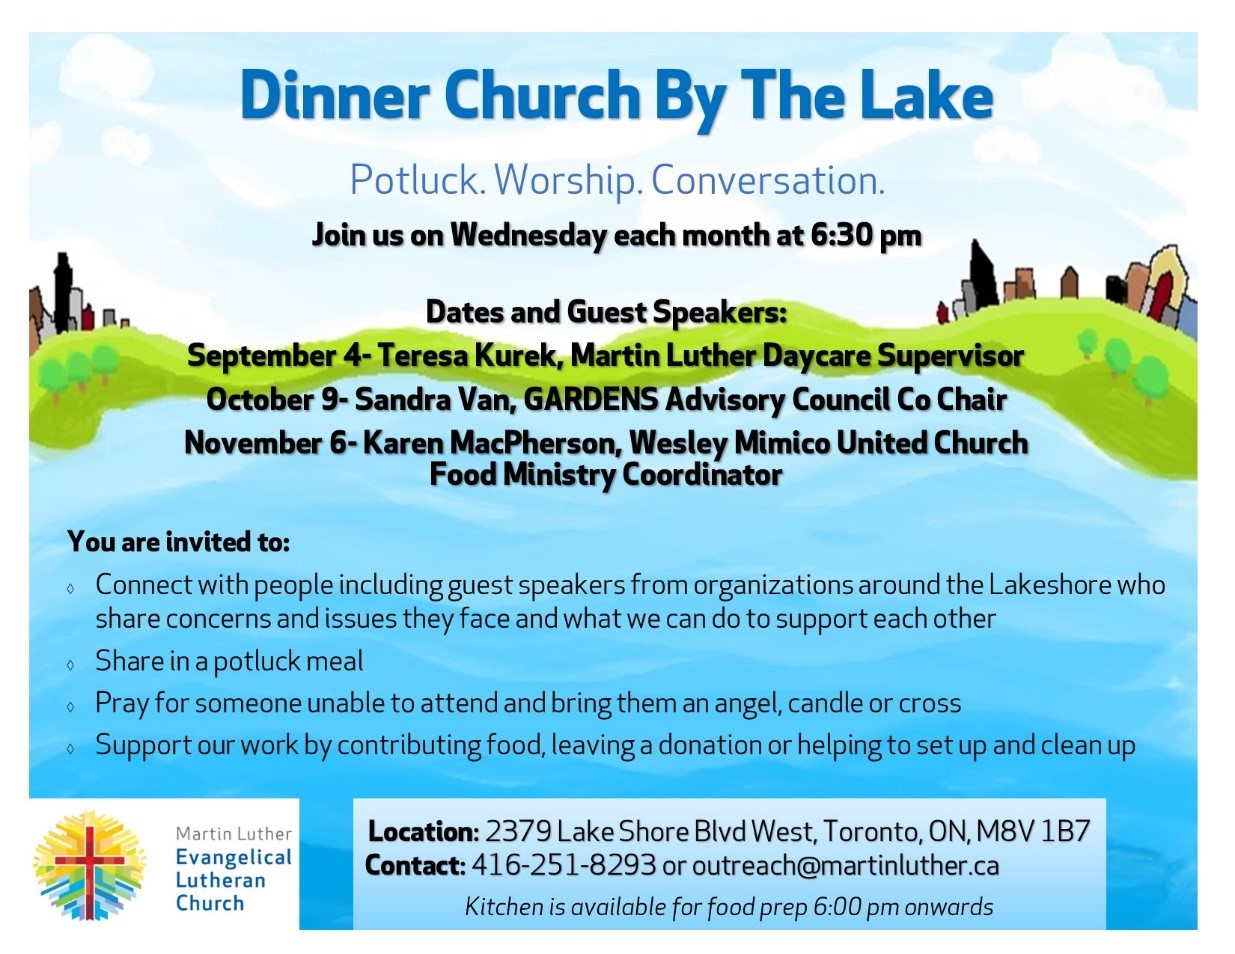 2019 Dinner Church Poster -Sep Oct Nov(Sep4-2019)